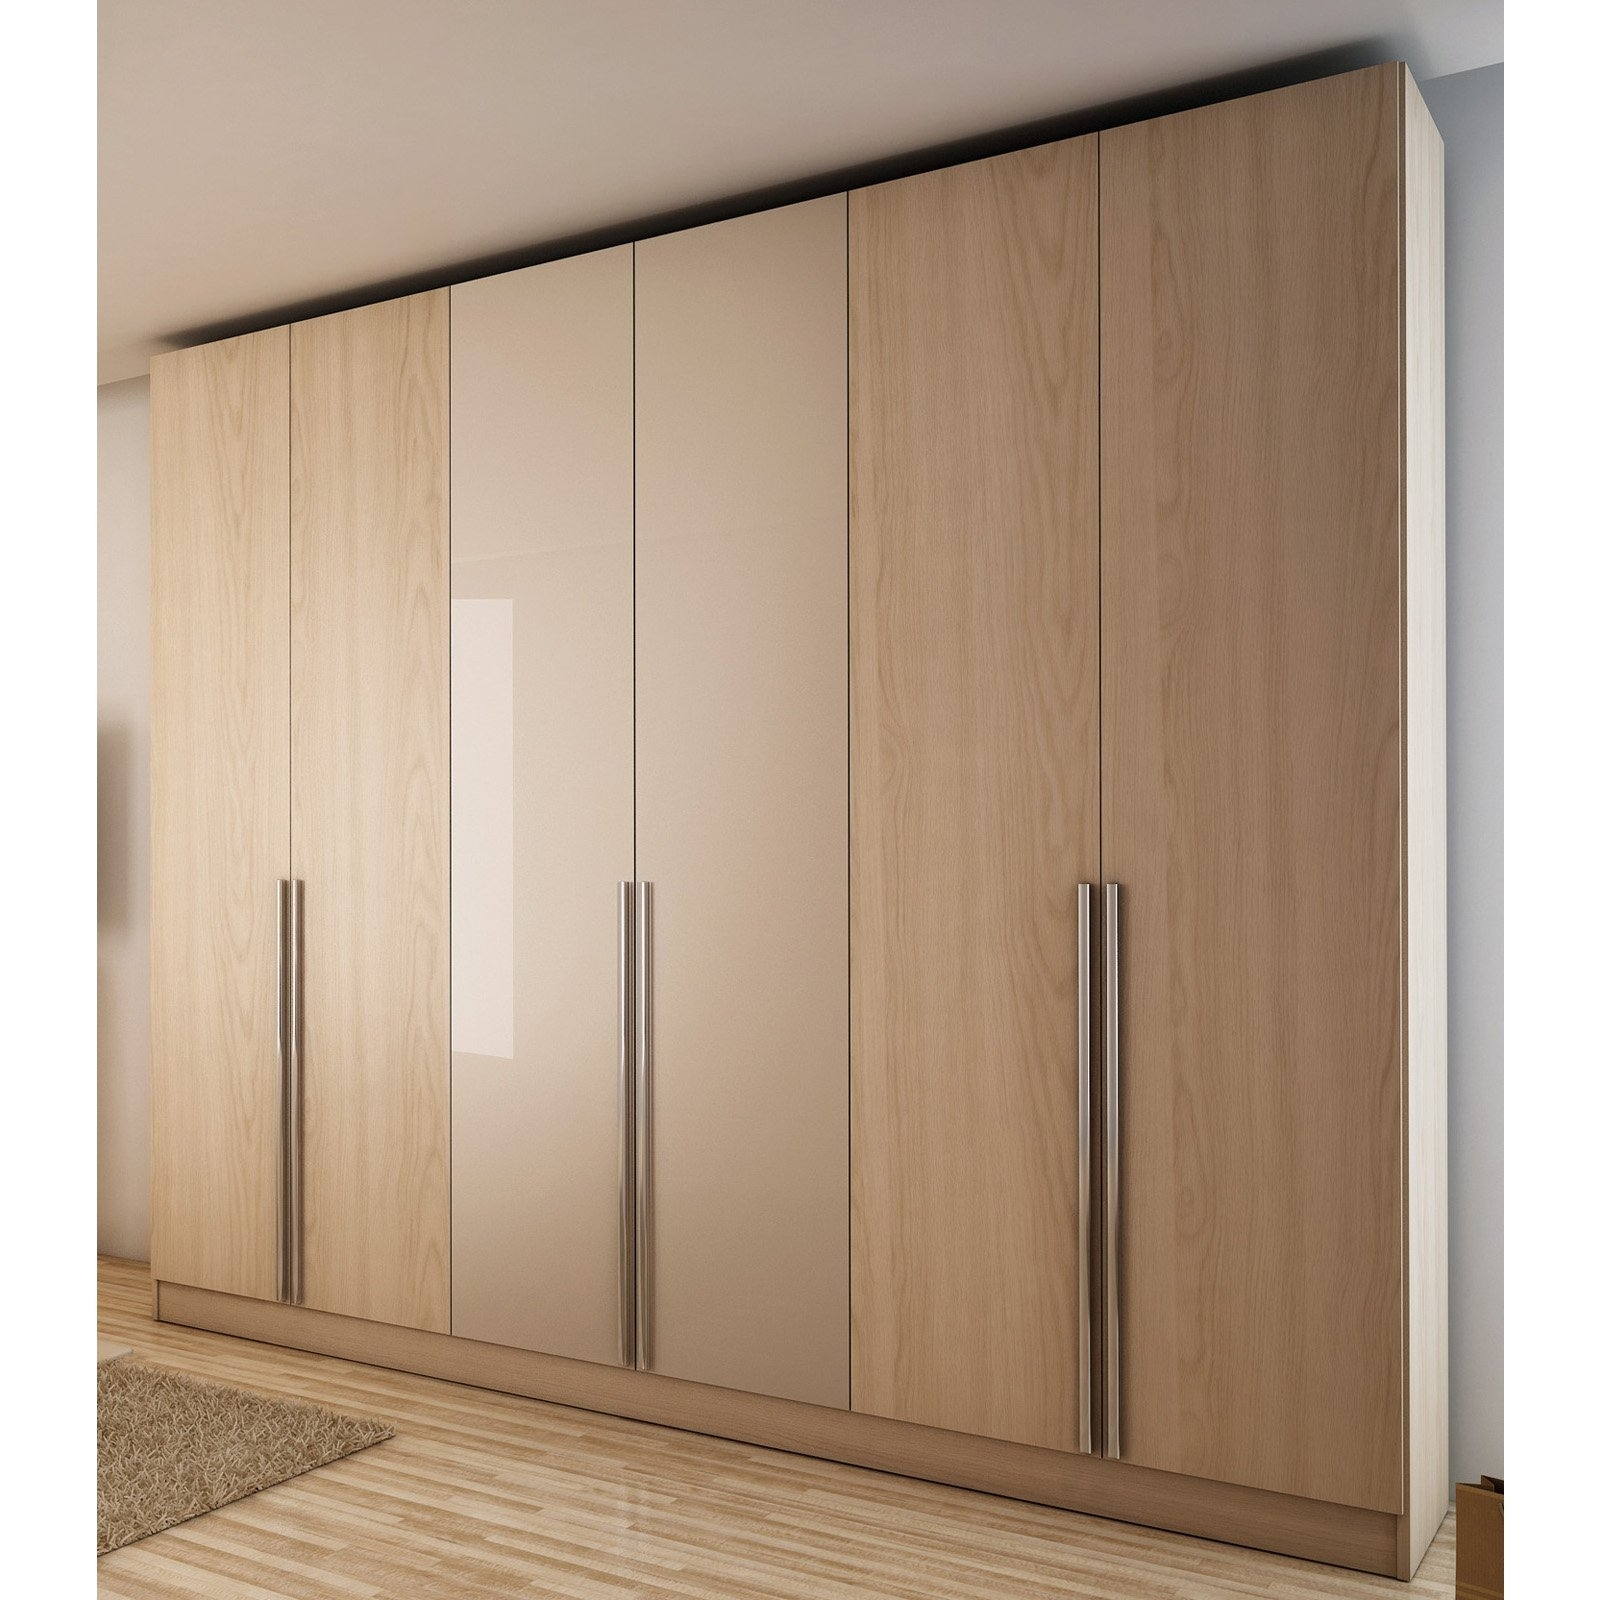 Latest Home Source 3 Door Wardrobe With 2 Shelves (View 13 of 15)